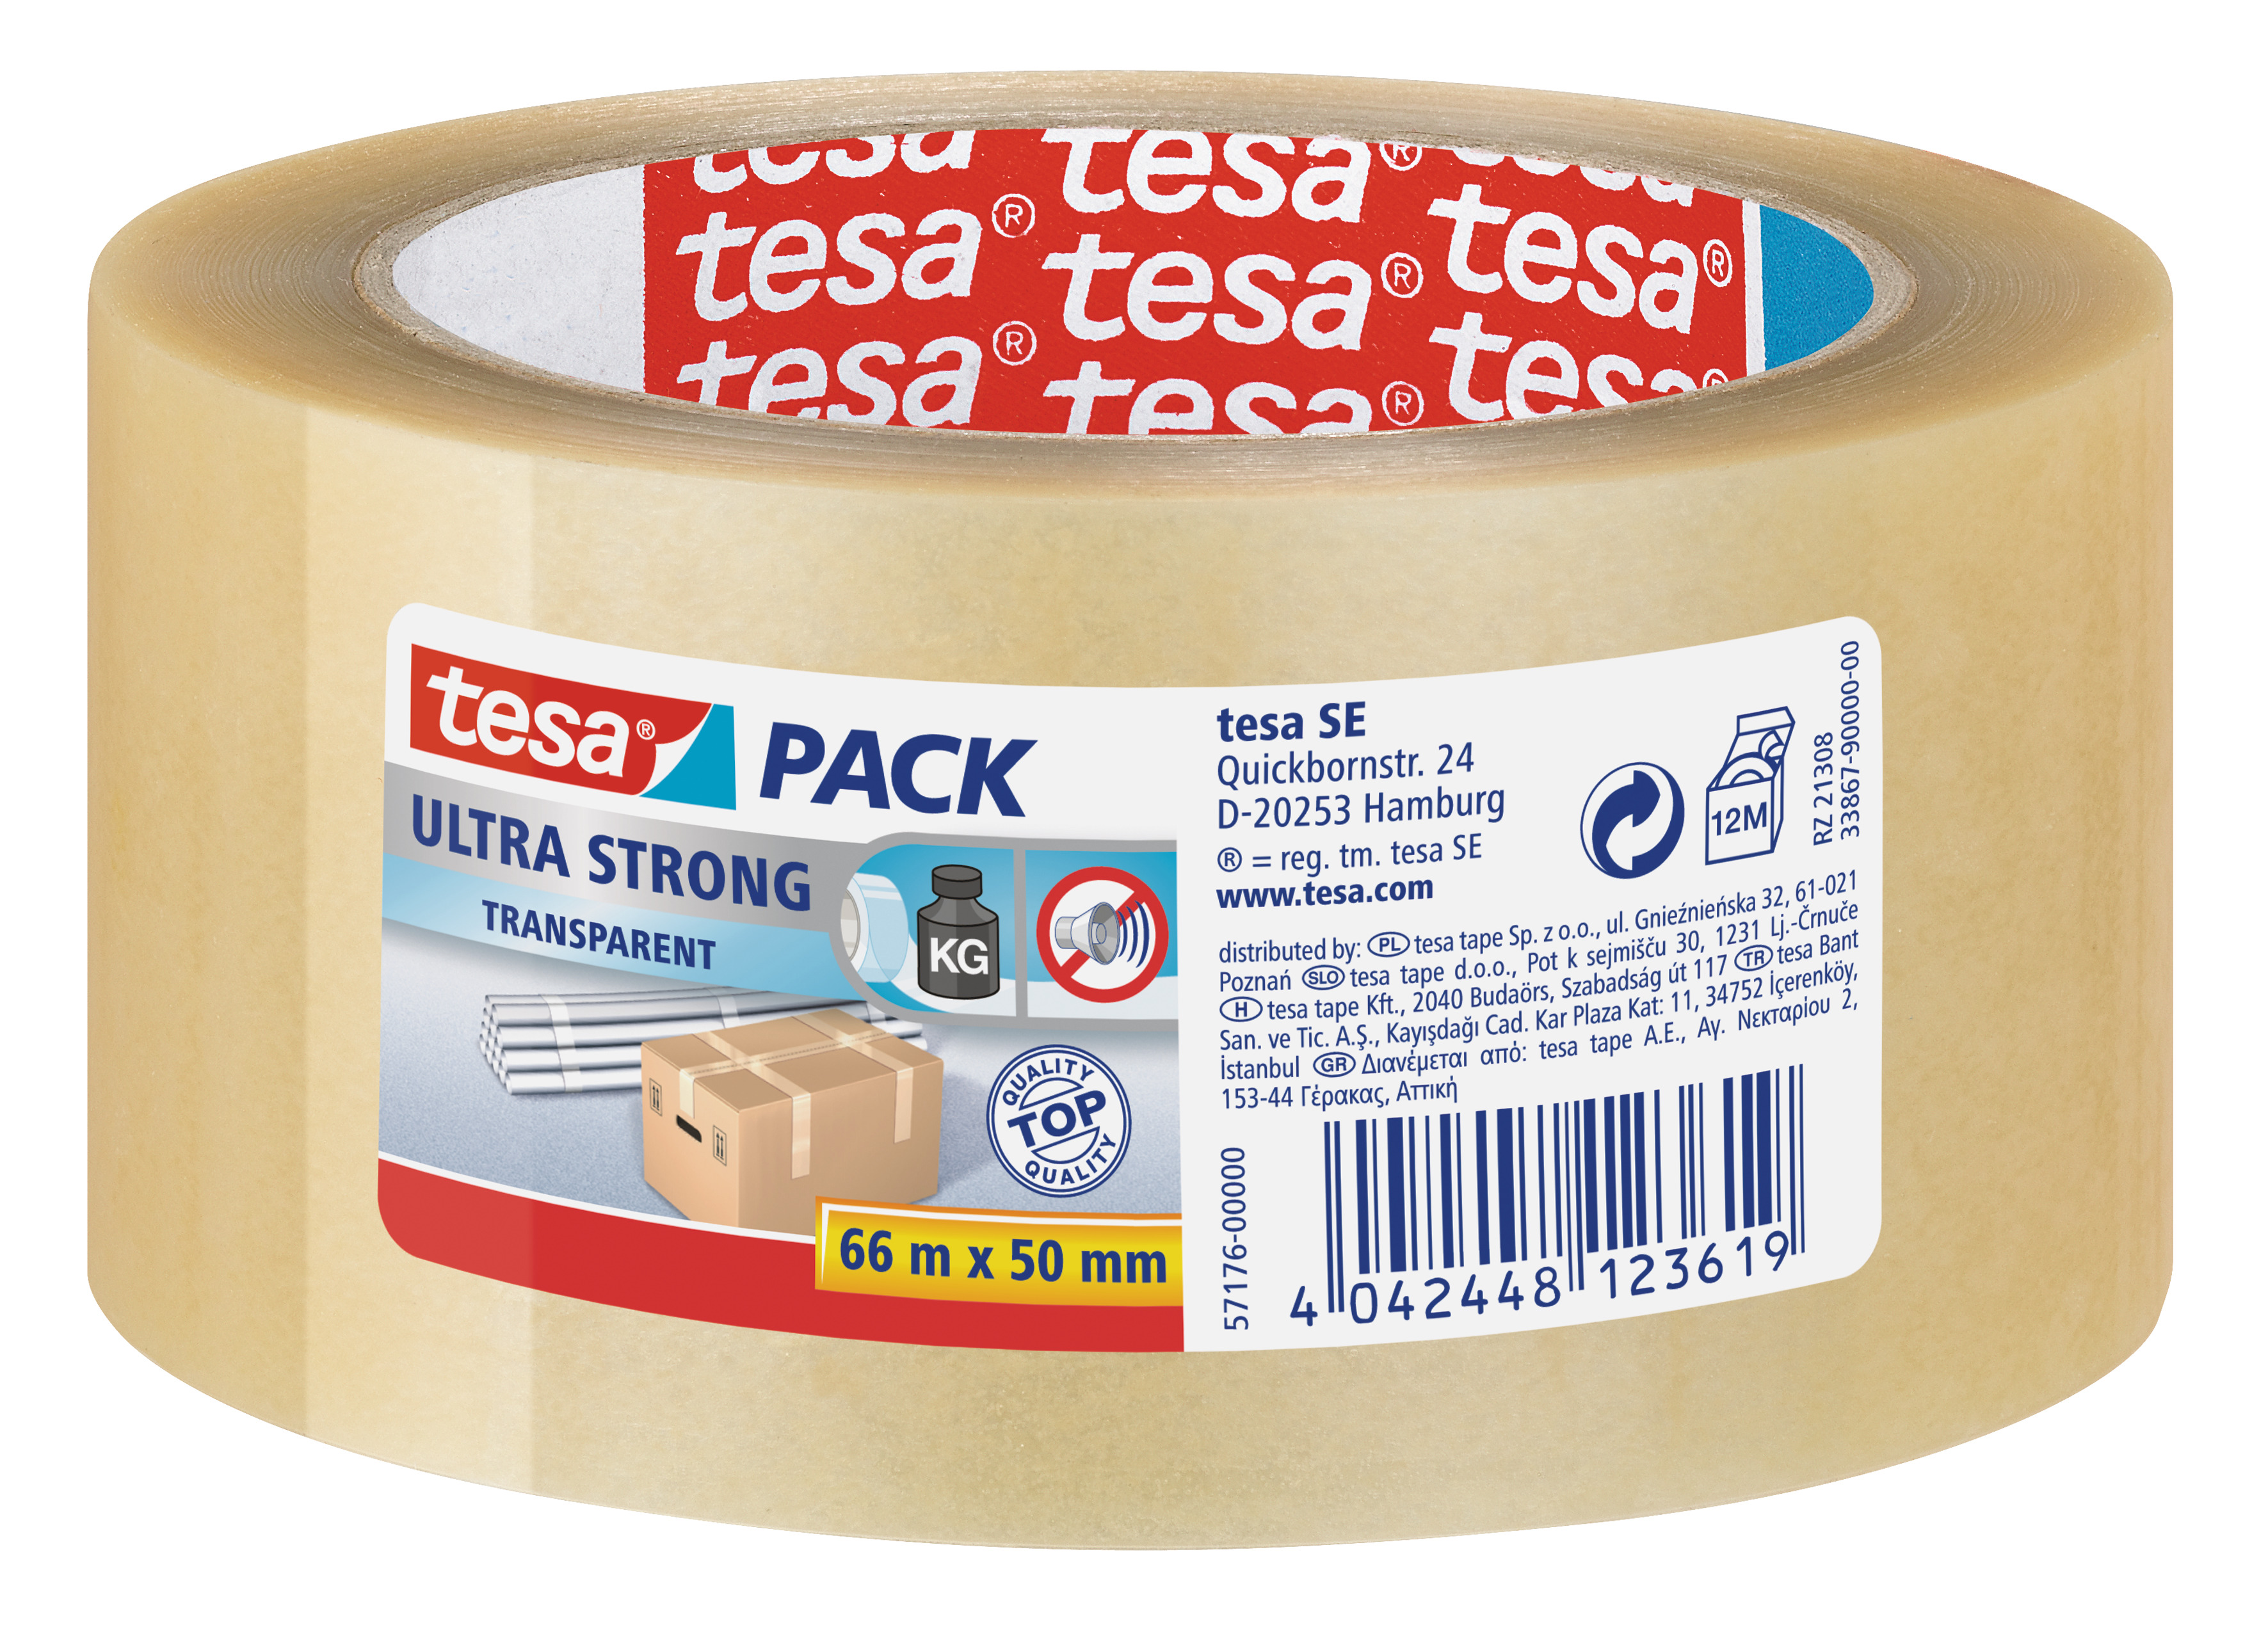 GP: 0,05 EUR/m tesa tesapack ultra strong, transparent ( PVC ) 66m x 50mm